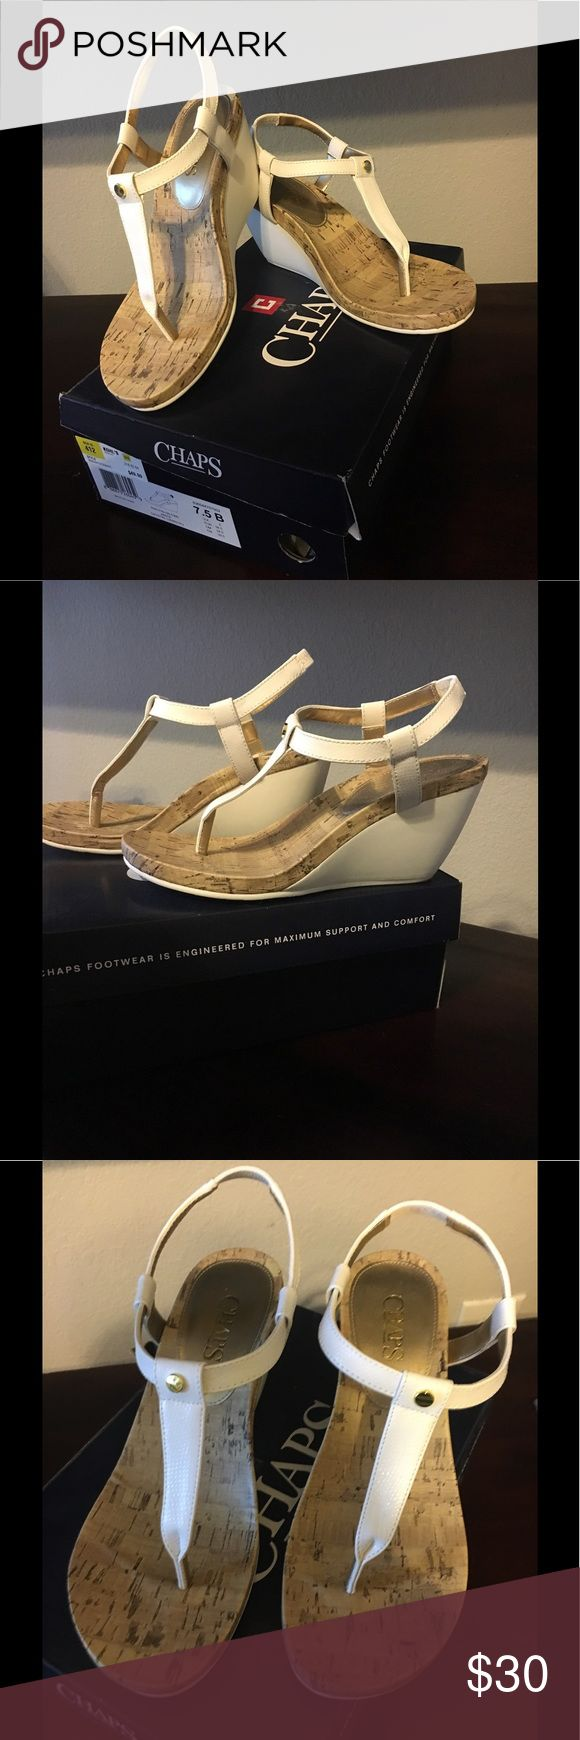 Chaps Ralph Lauren Wedge Sandals Beautiful Chaps Sandals. Worn once. Too many Sandals and these never get worn. Original box included! Chaps Shoes Sandals